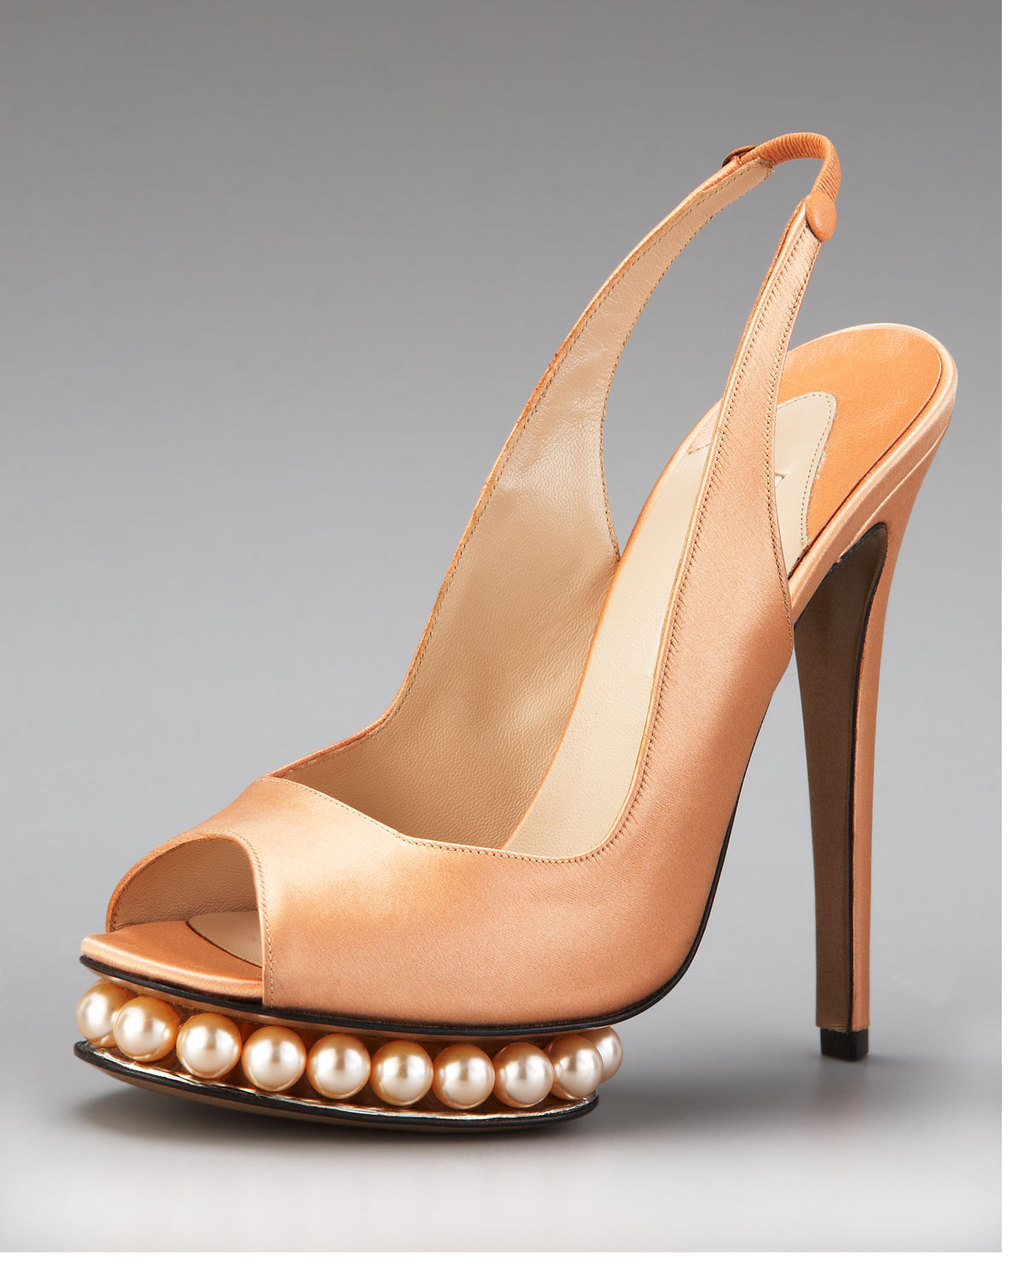 wedding splurge top 10 for fall 2012 Nicholas Kirkwood slingbacks